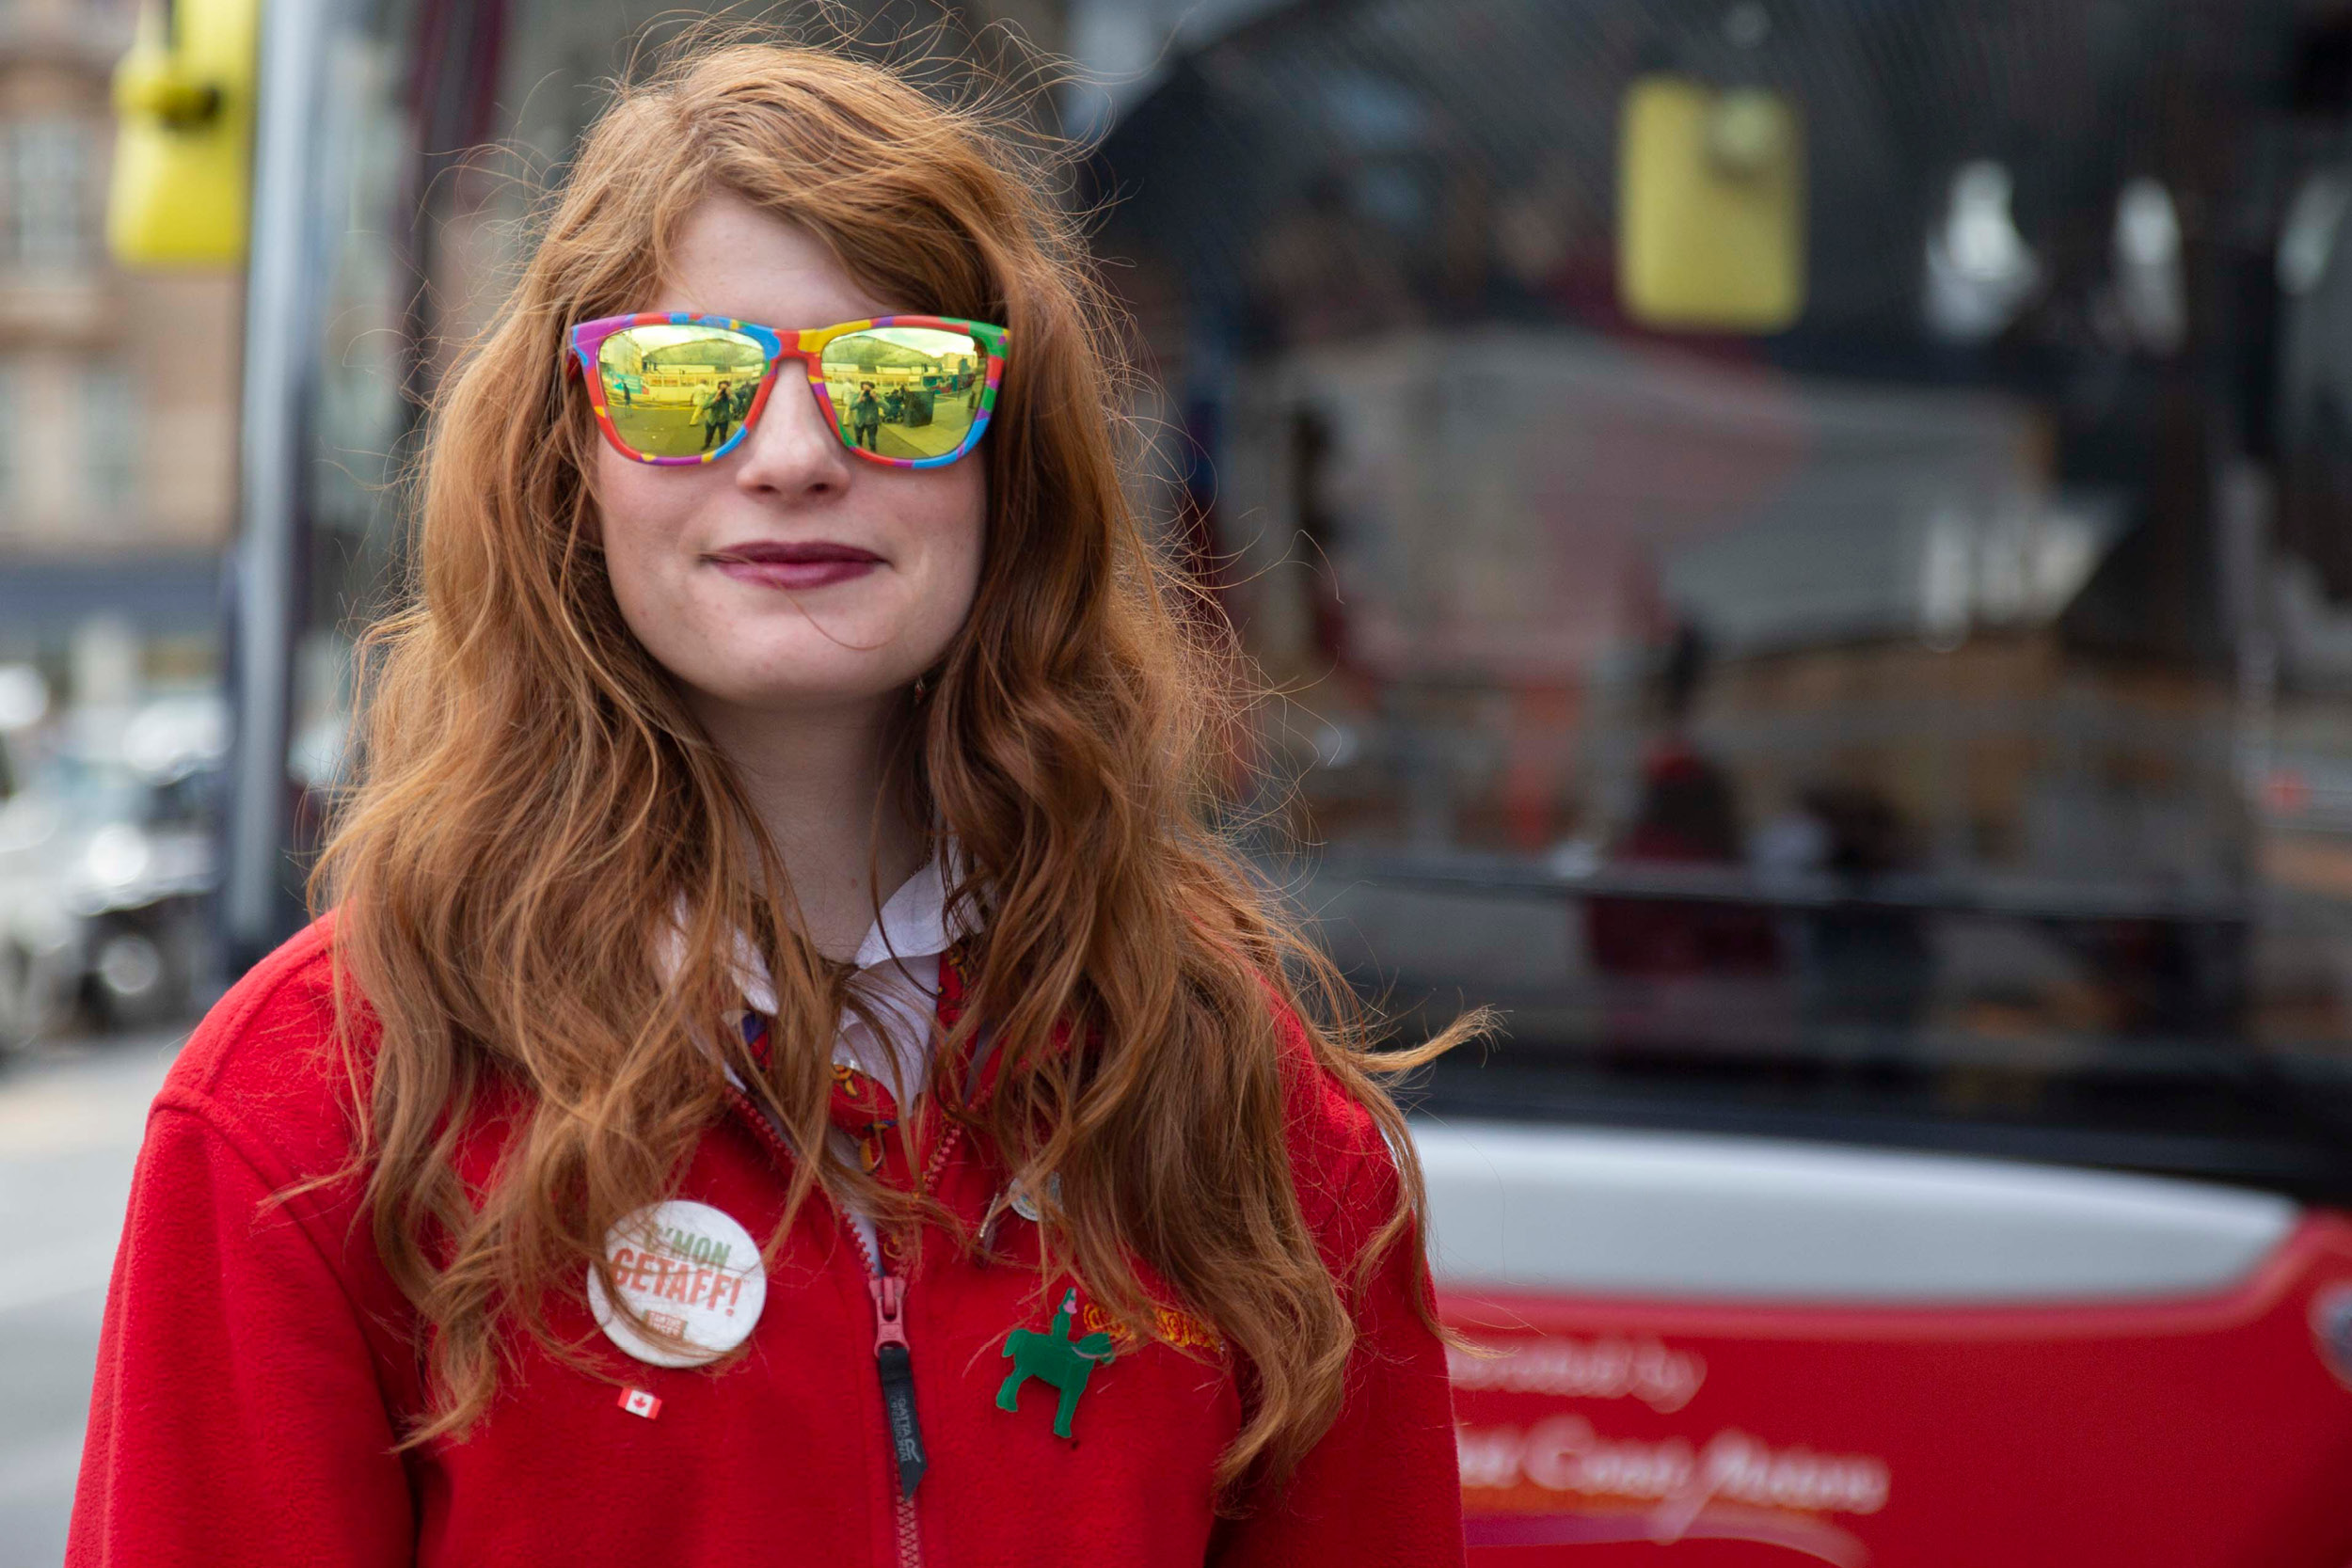 girl with red hair and red fleece wearing sunglasses and smiling